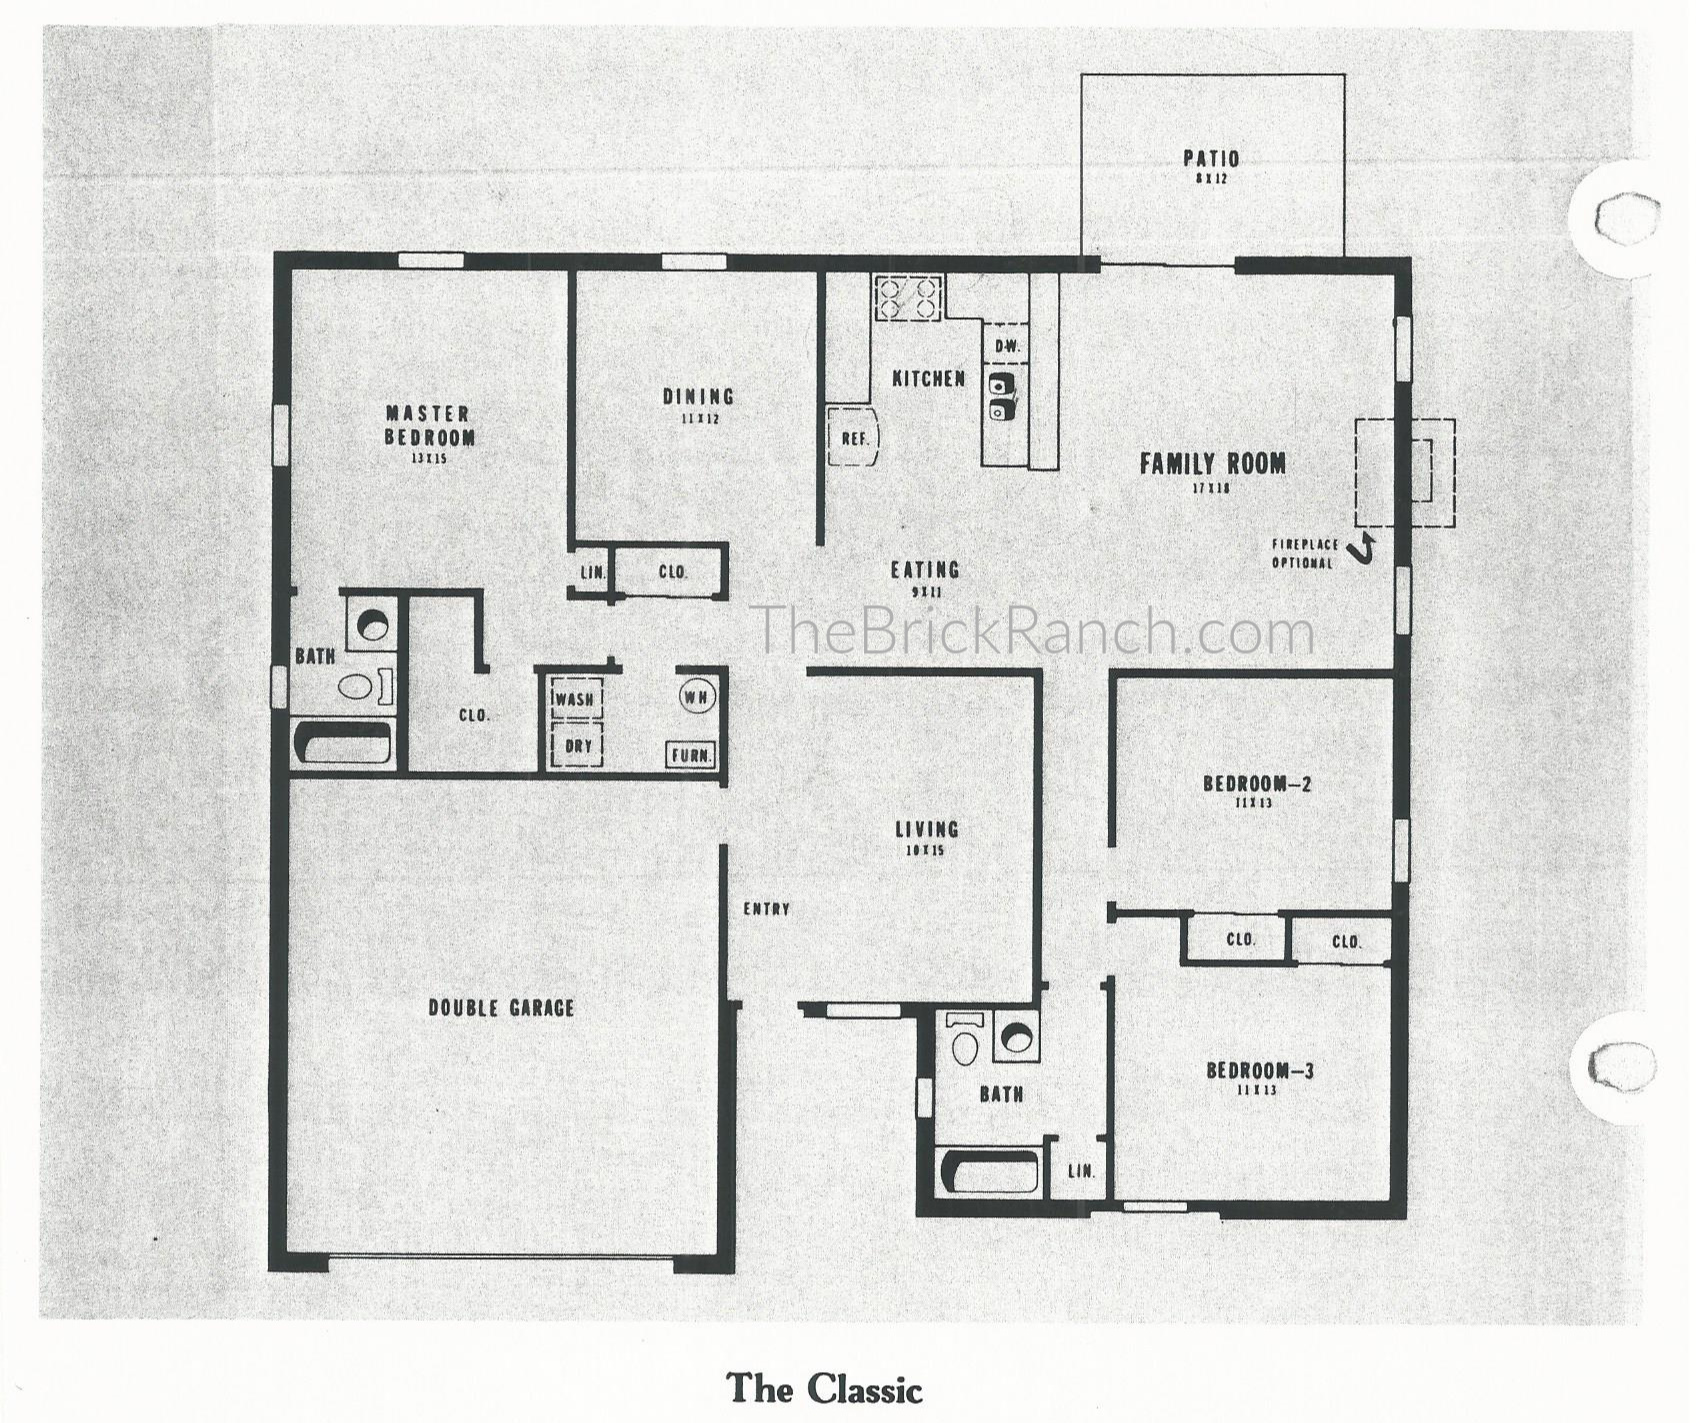 Huber Home Floor Plans: The Classic